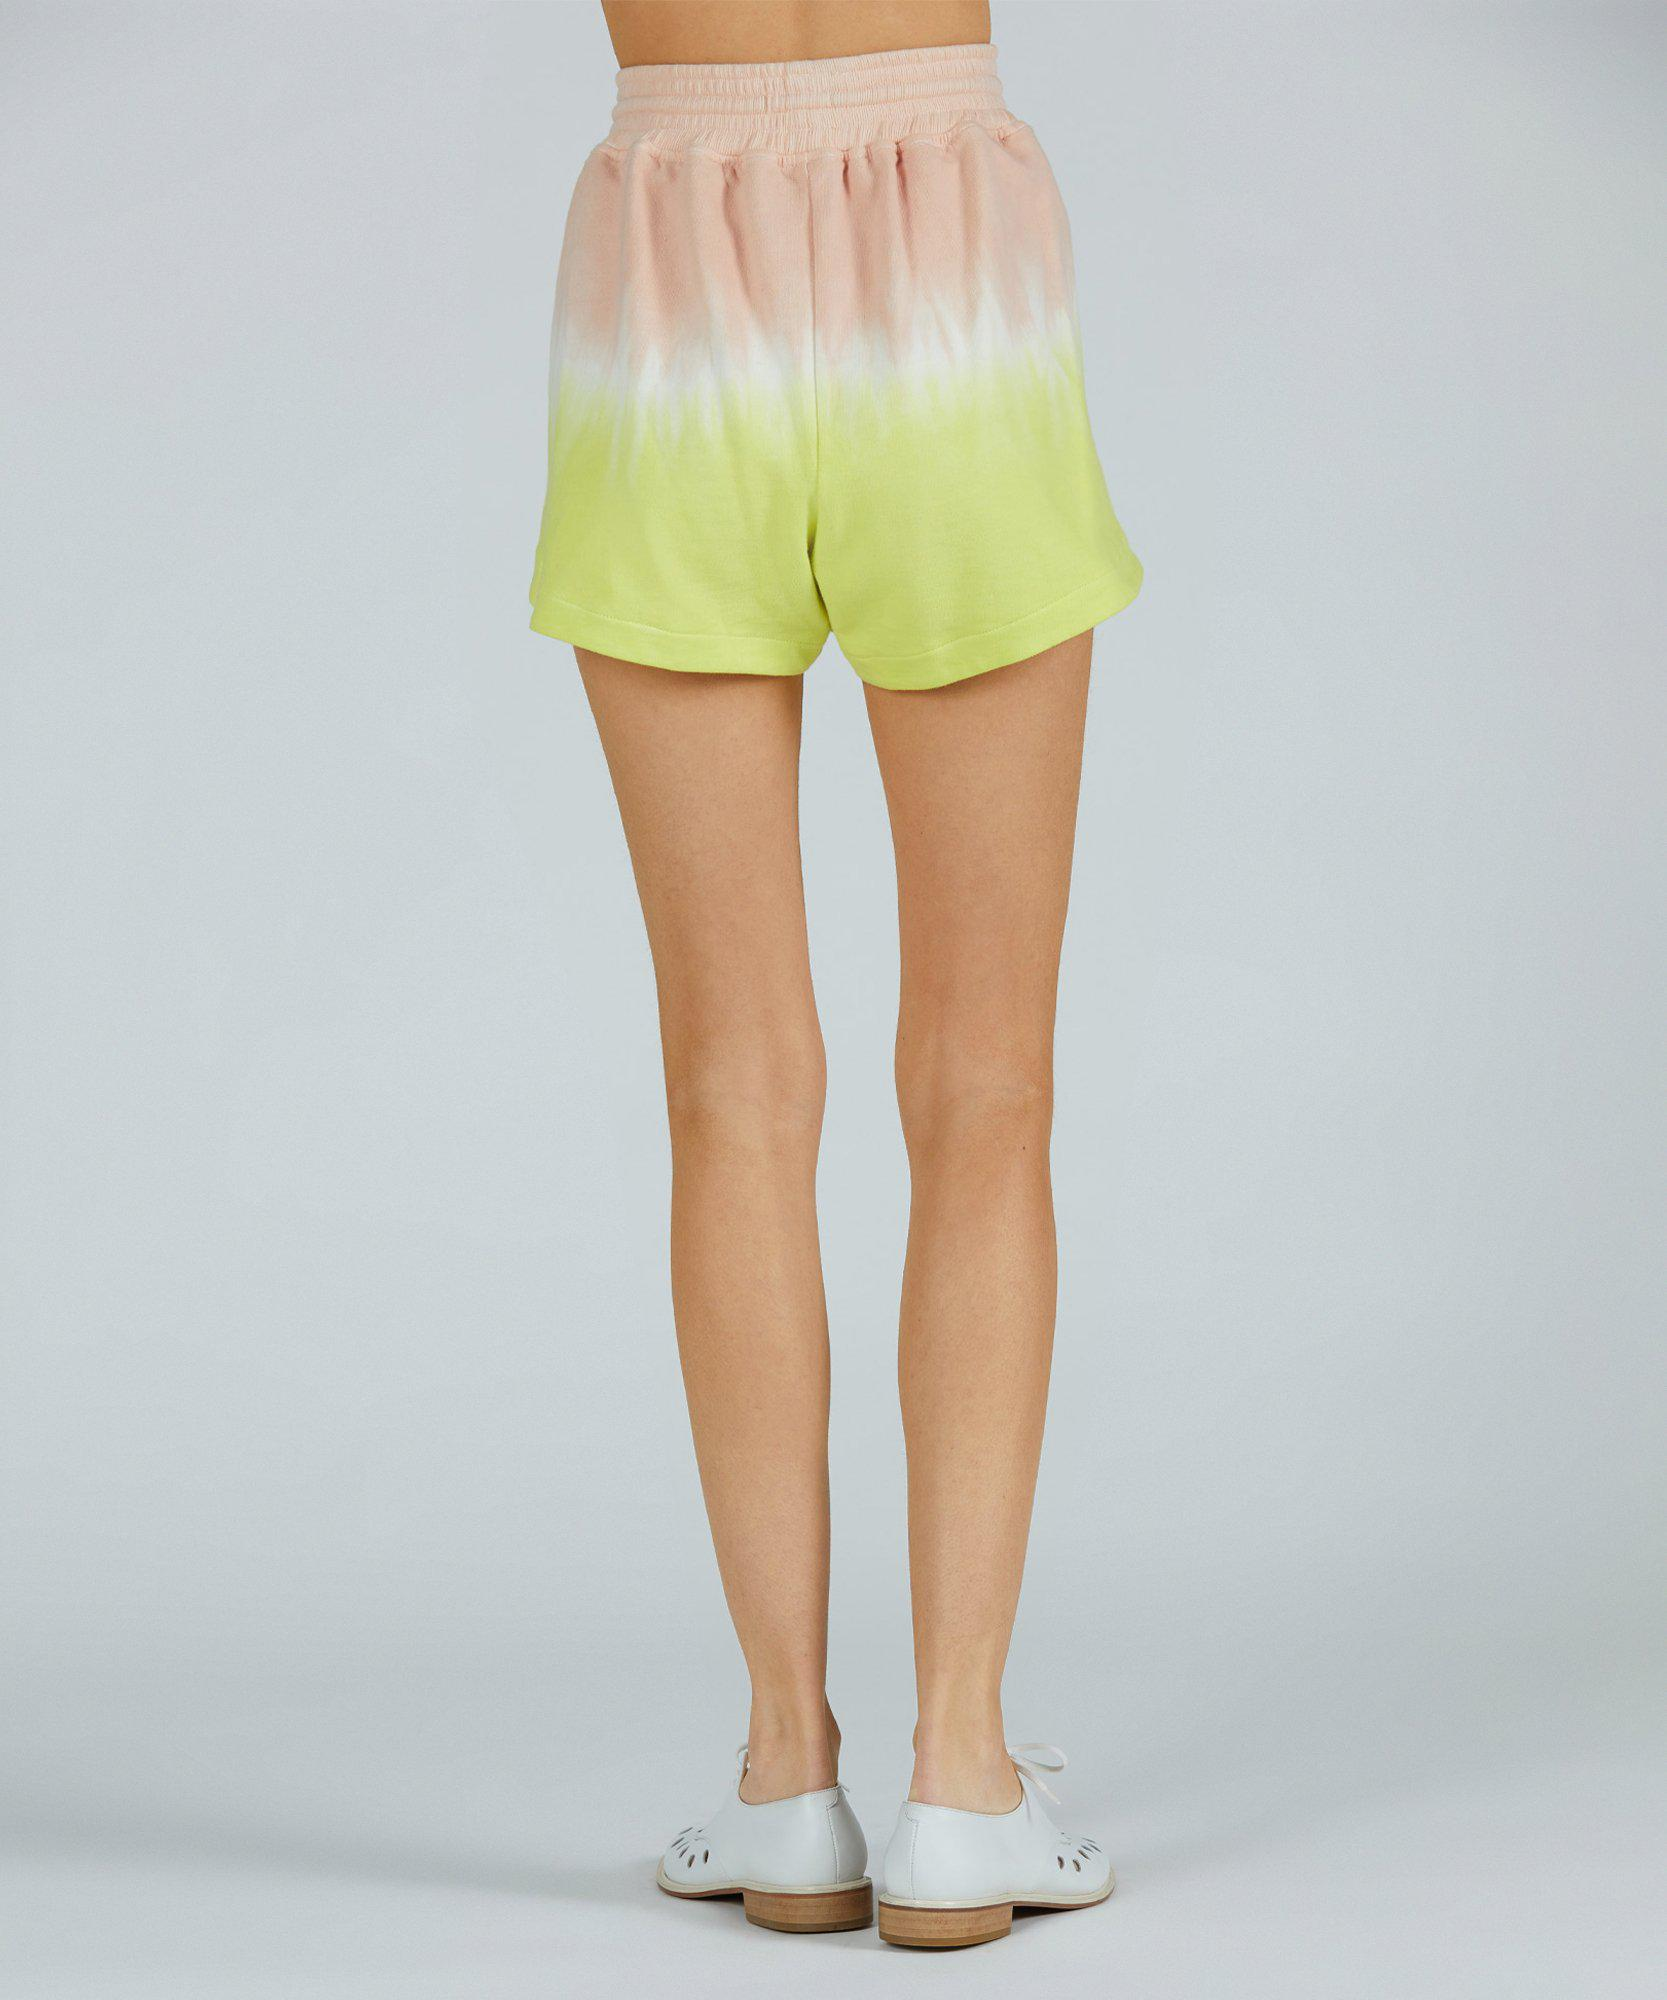 French Terry Pull-On Short - Shell Combo Dip Dye 2